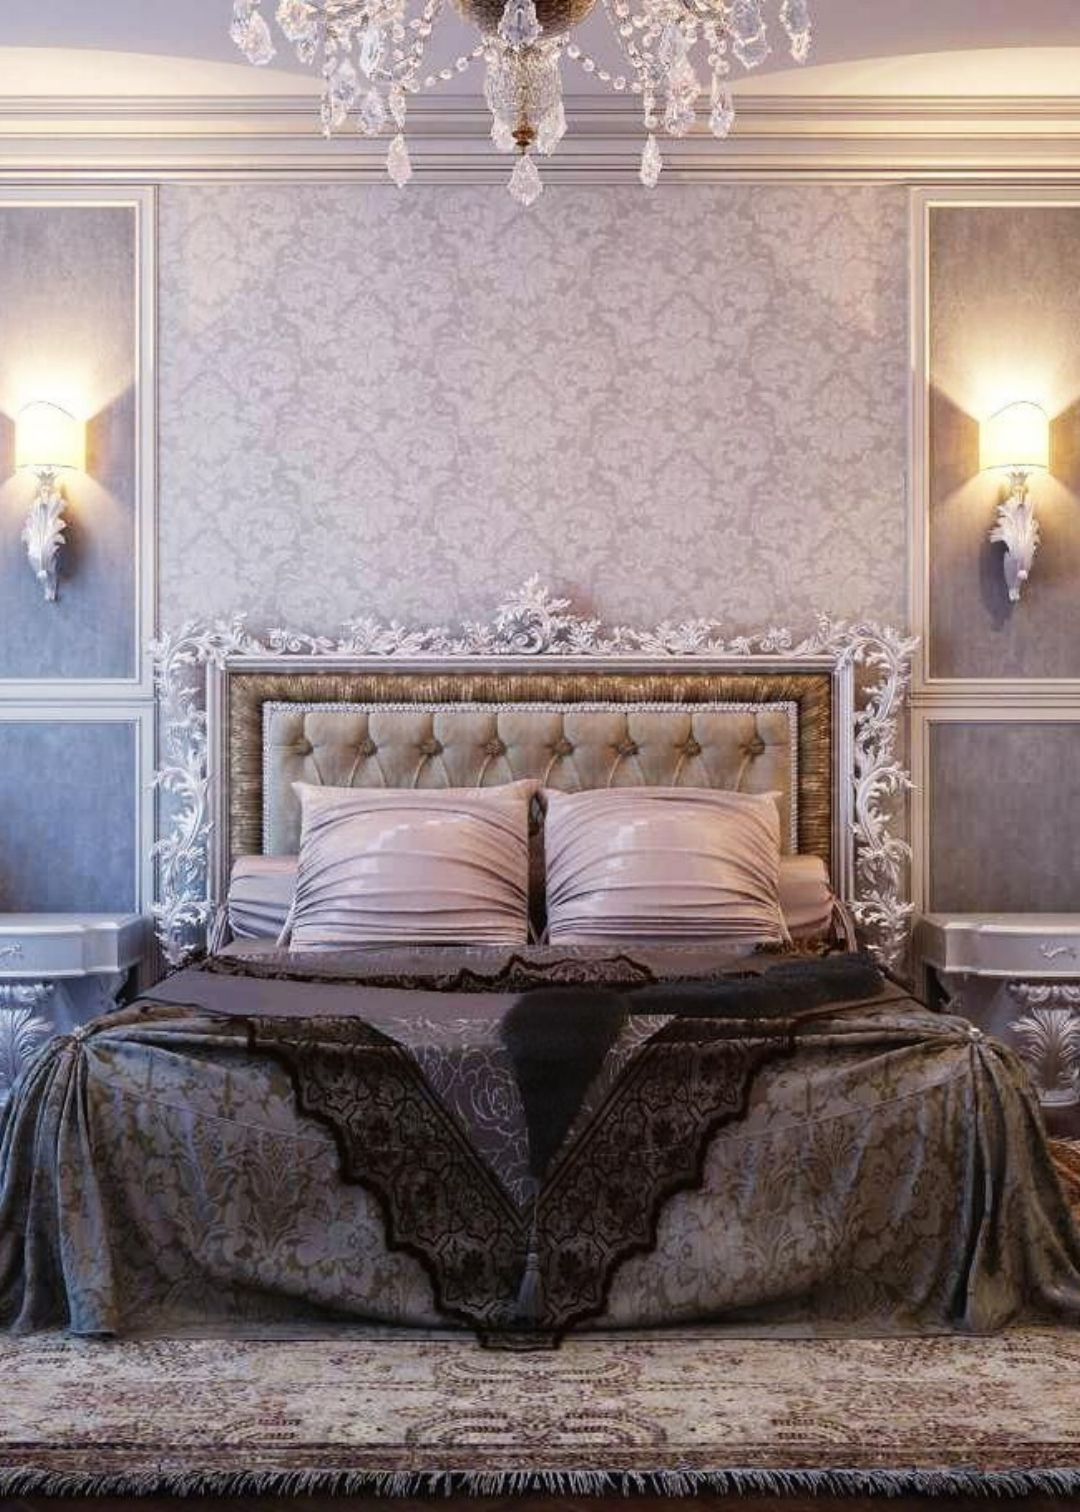 artistic cheap bedroom furniture. Glamorous Gray Bedroom Furniture Design Ideas With Artistic Headboard Silver Frame And Gold Accent Cheap